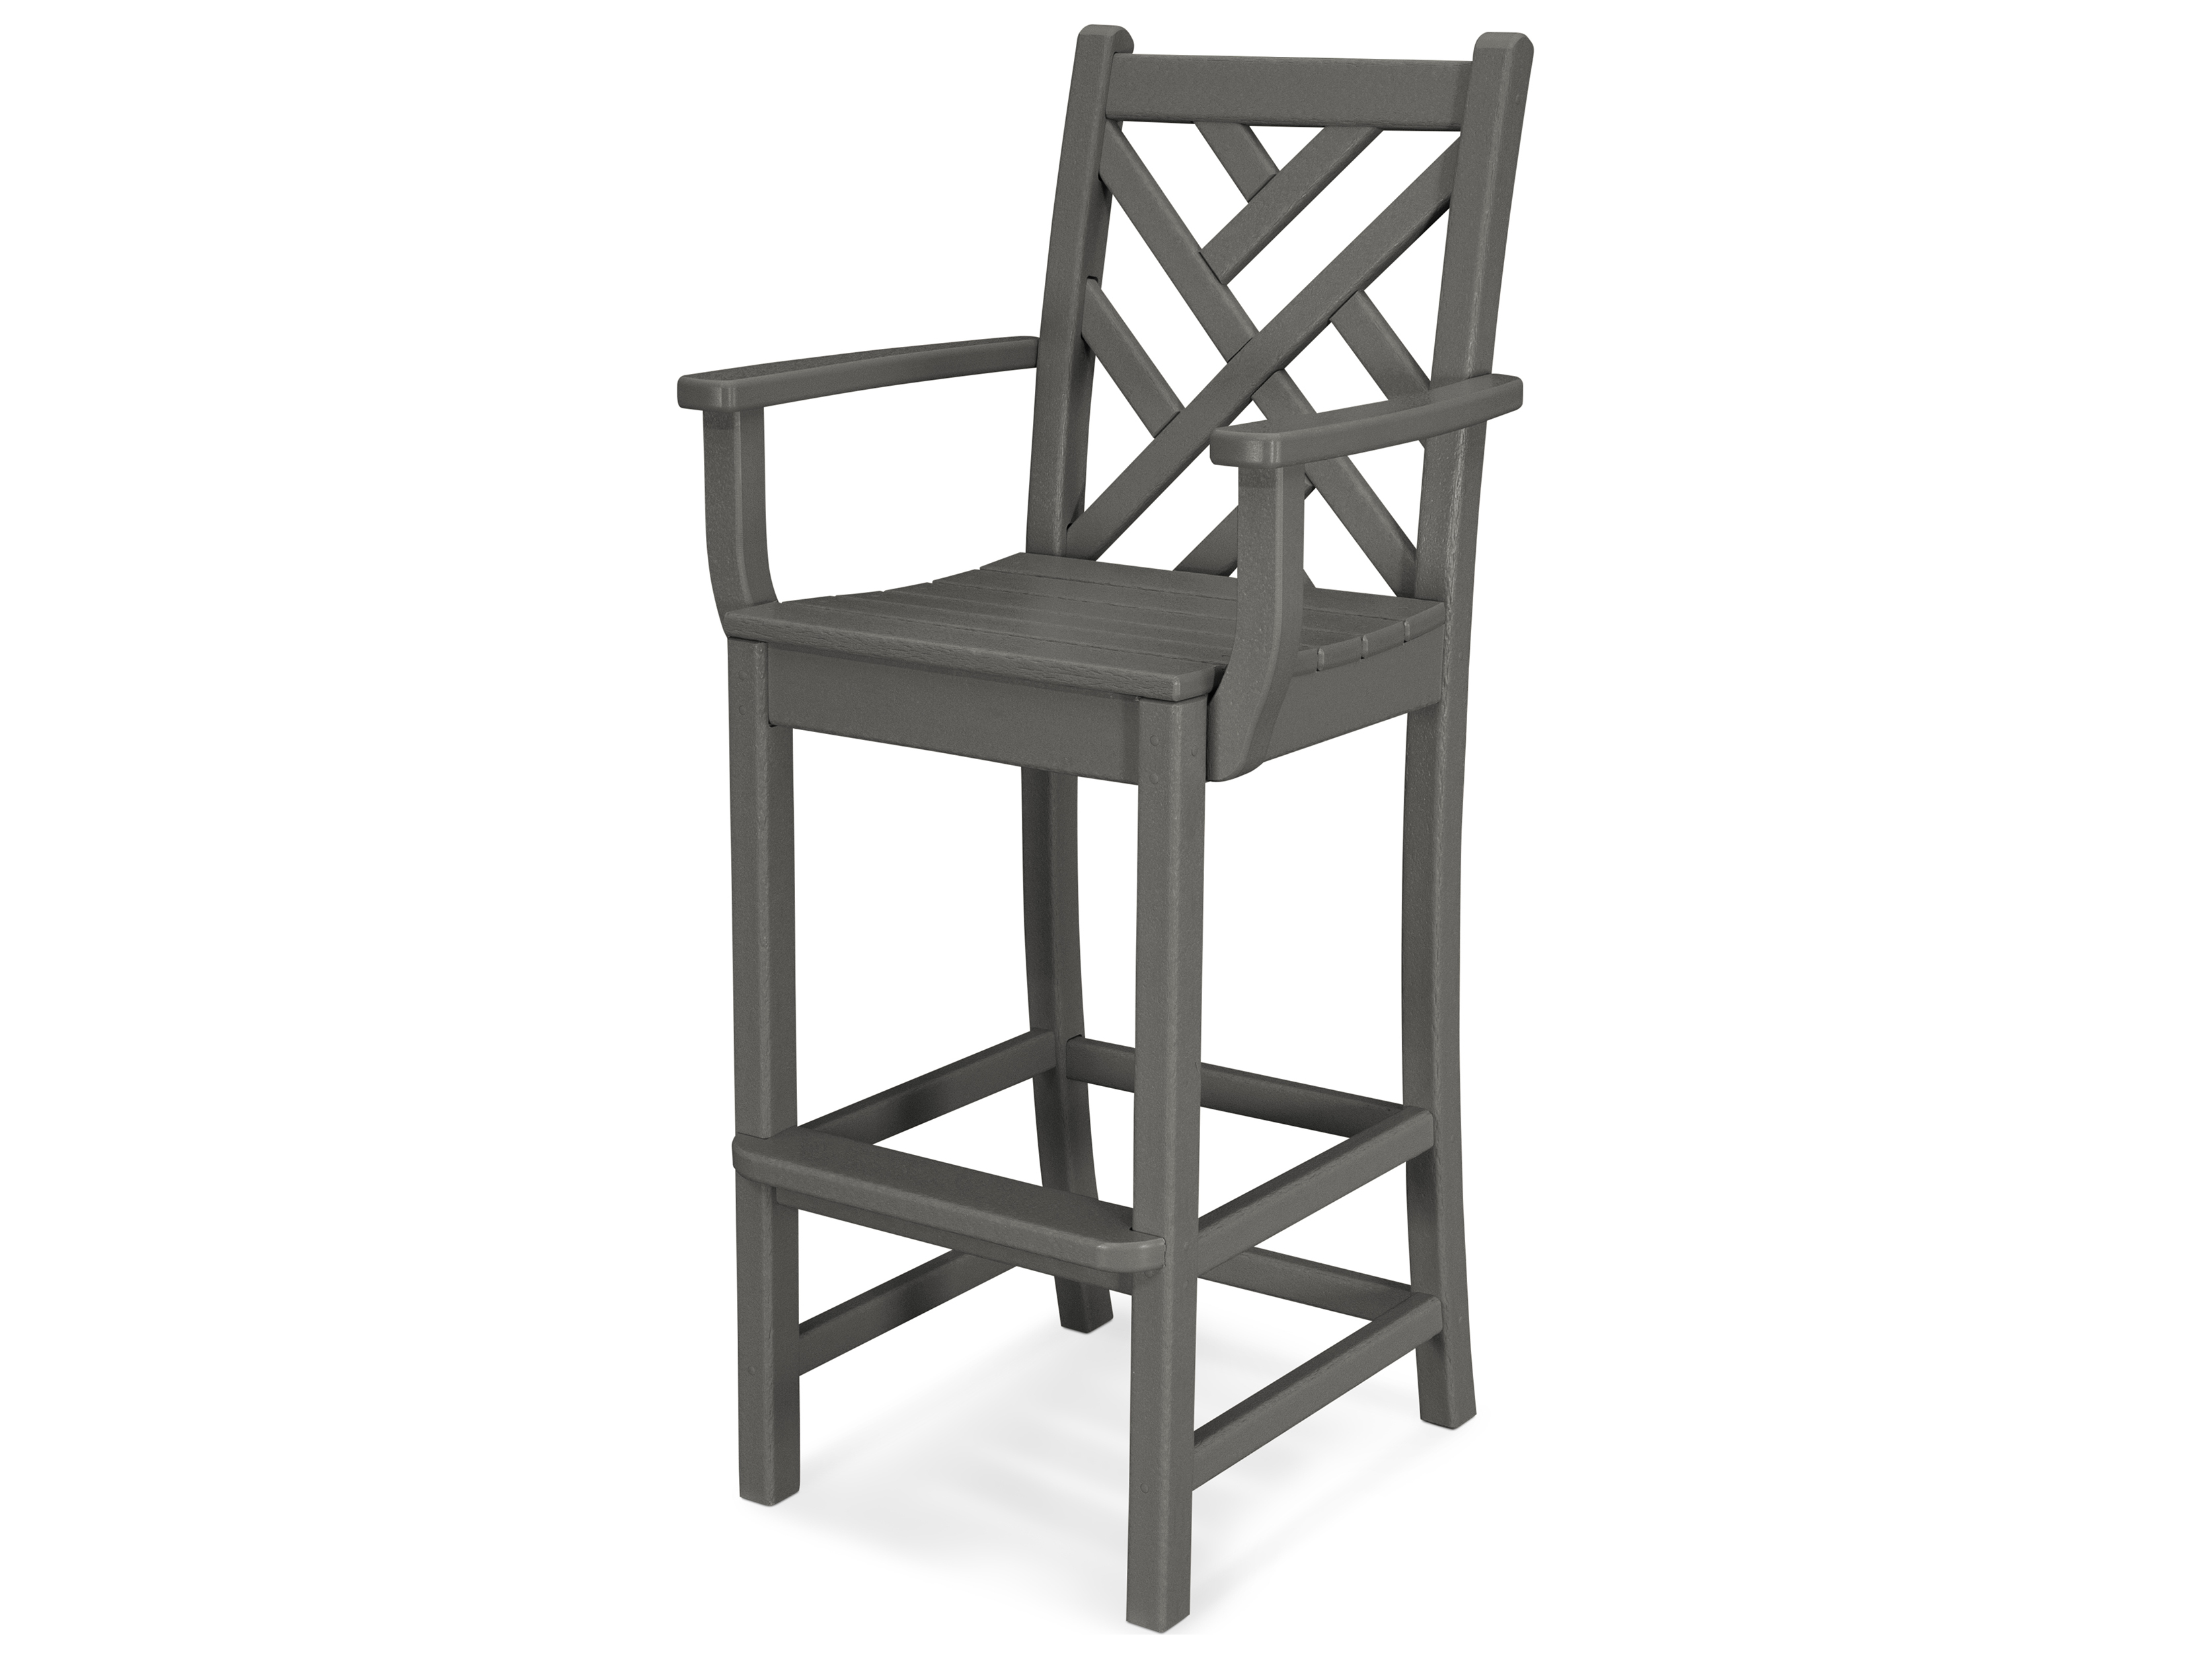 plastic stool chair malaysia cover hire aldershot polywood chippendale recycled bar cdd202